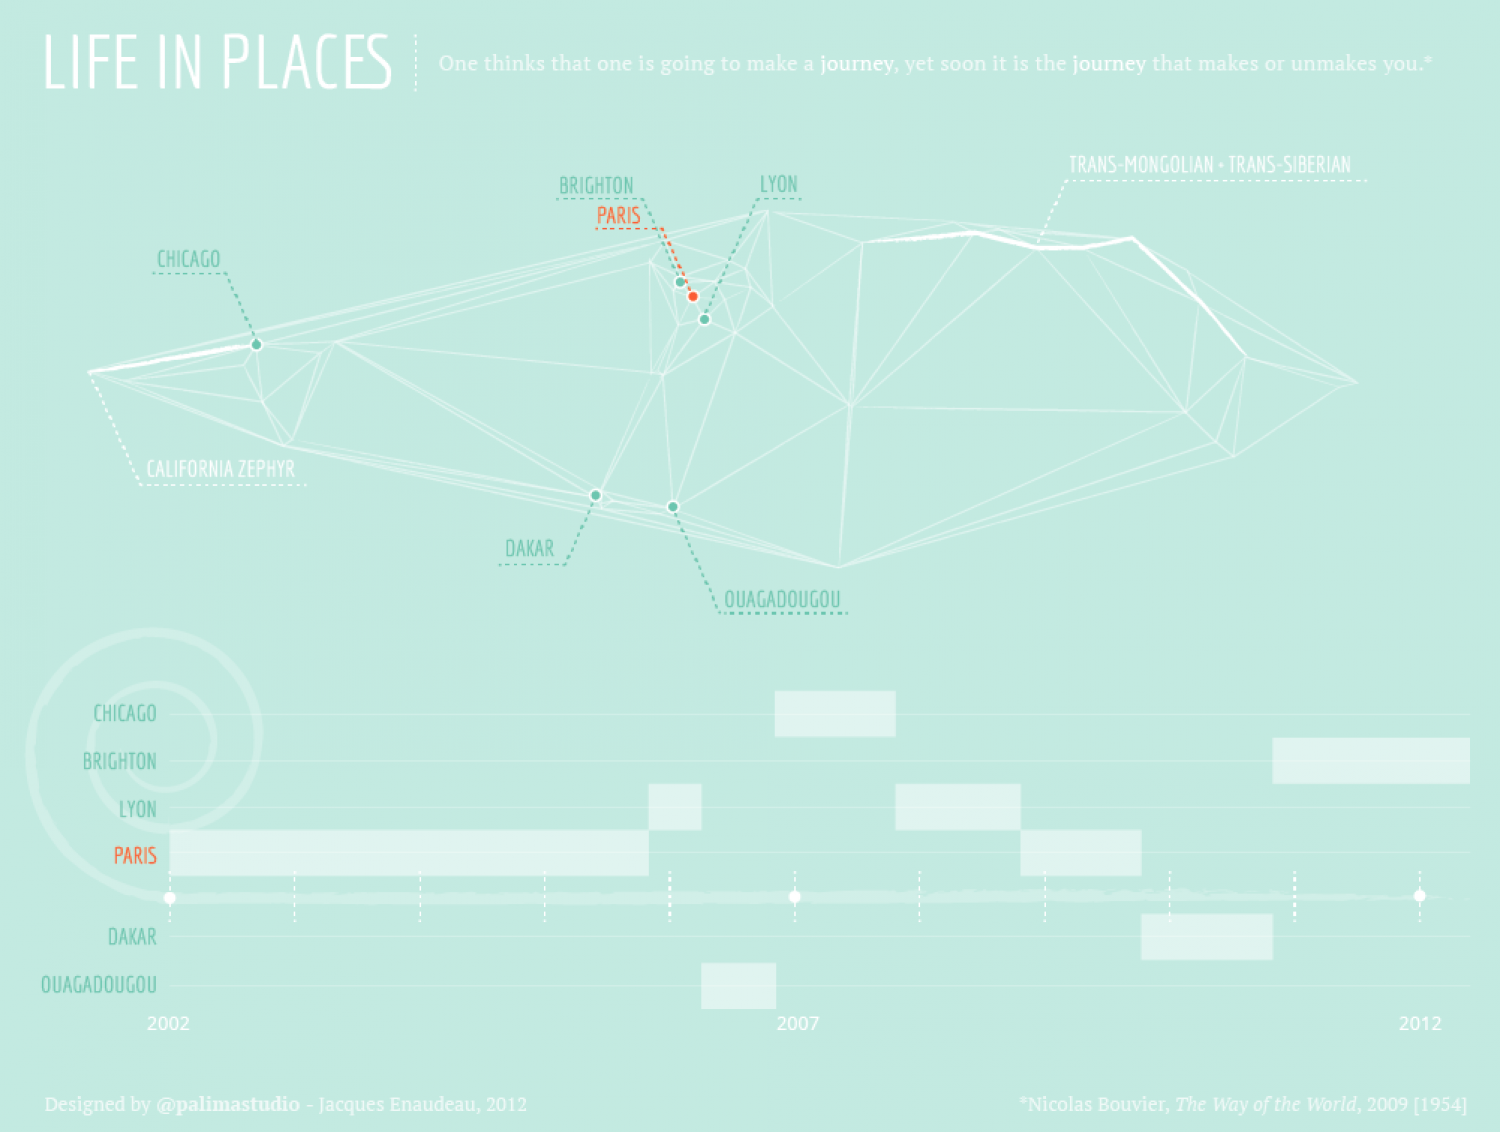 Life In Places Infographic